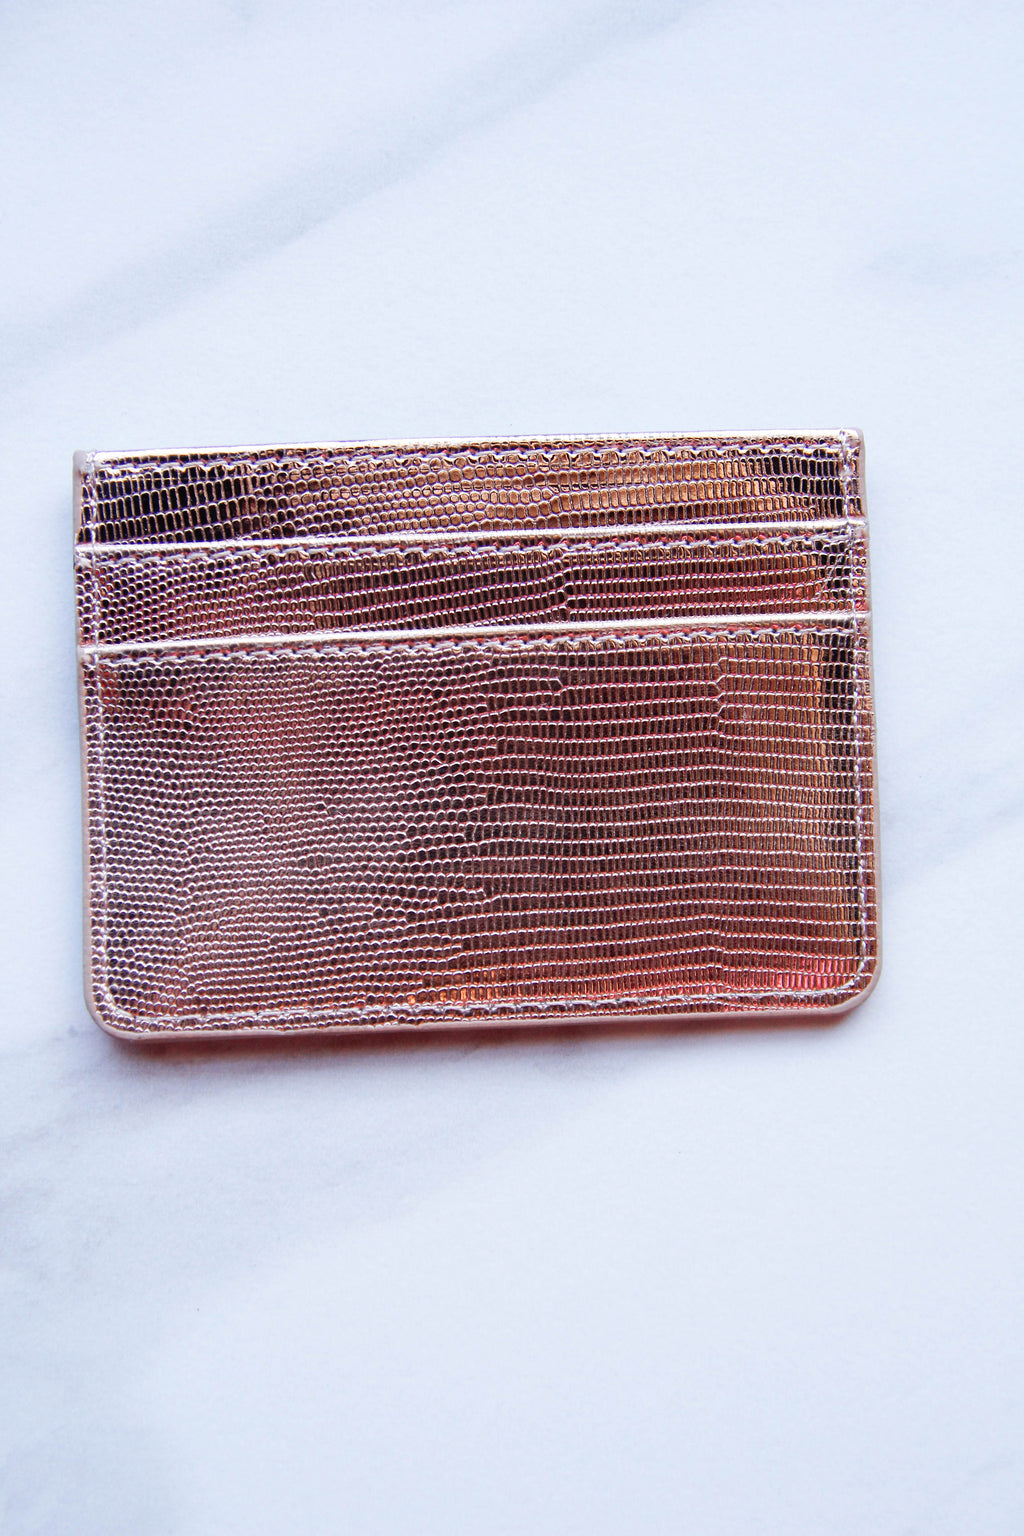 Don't Foil It Wallet - Rose Gold